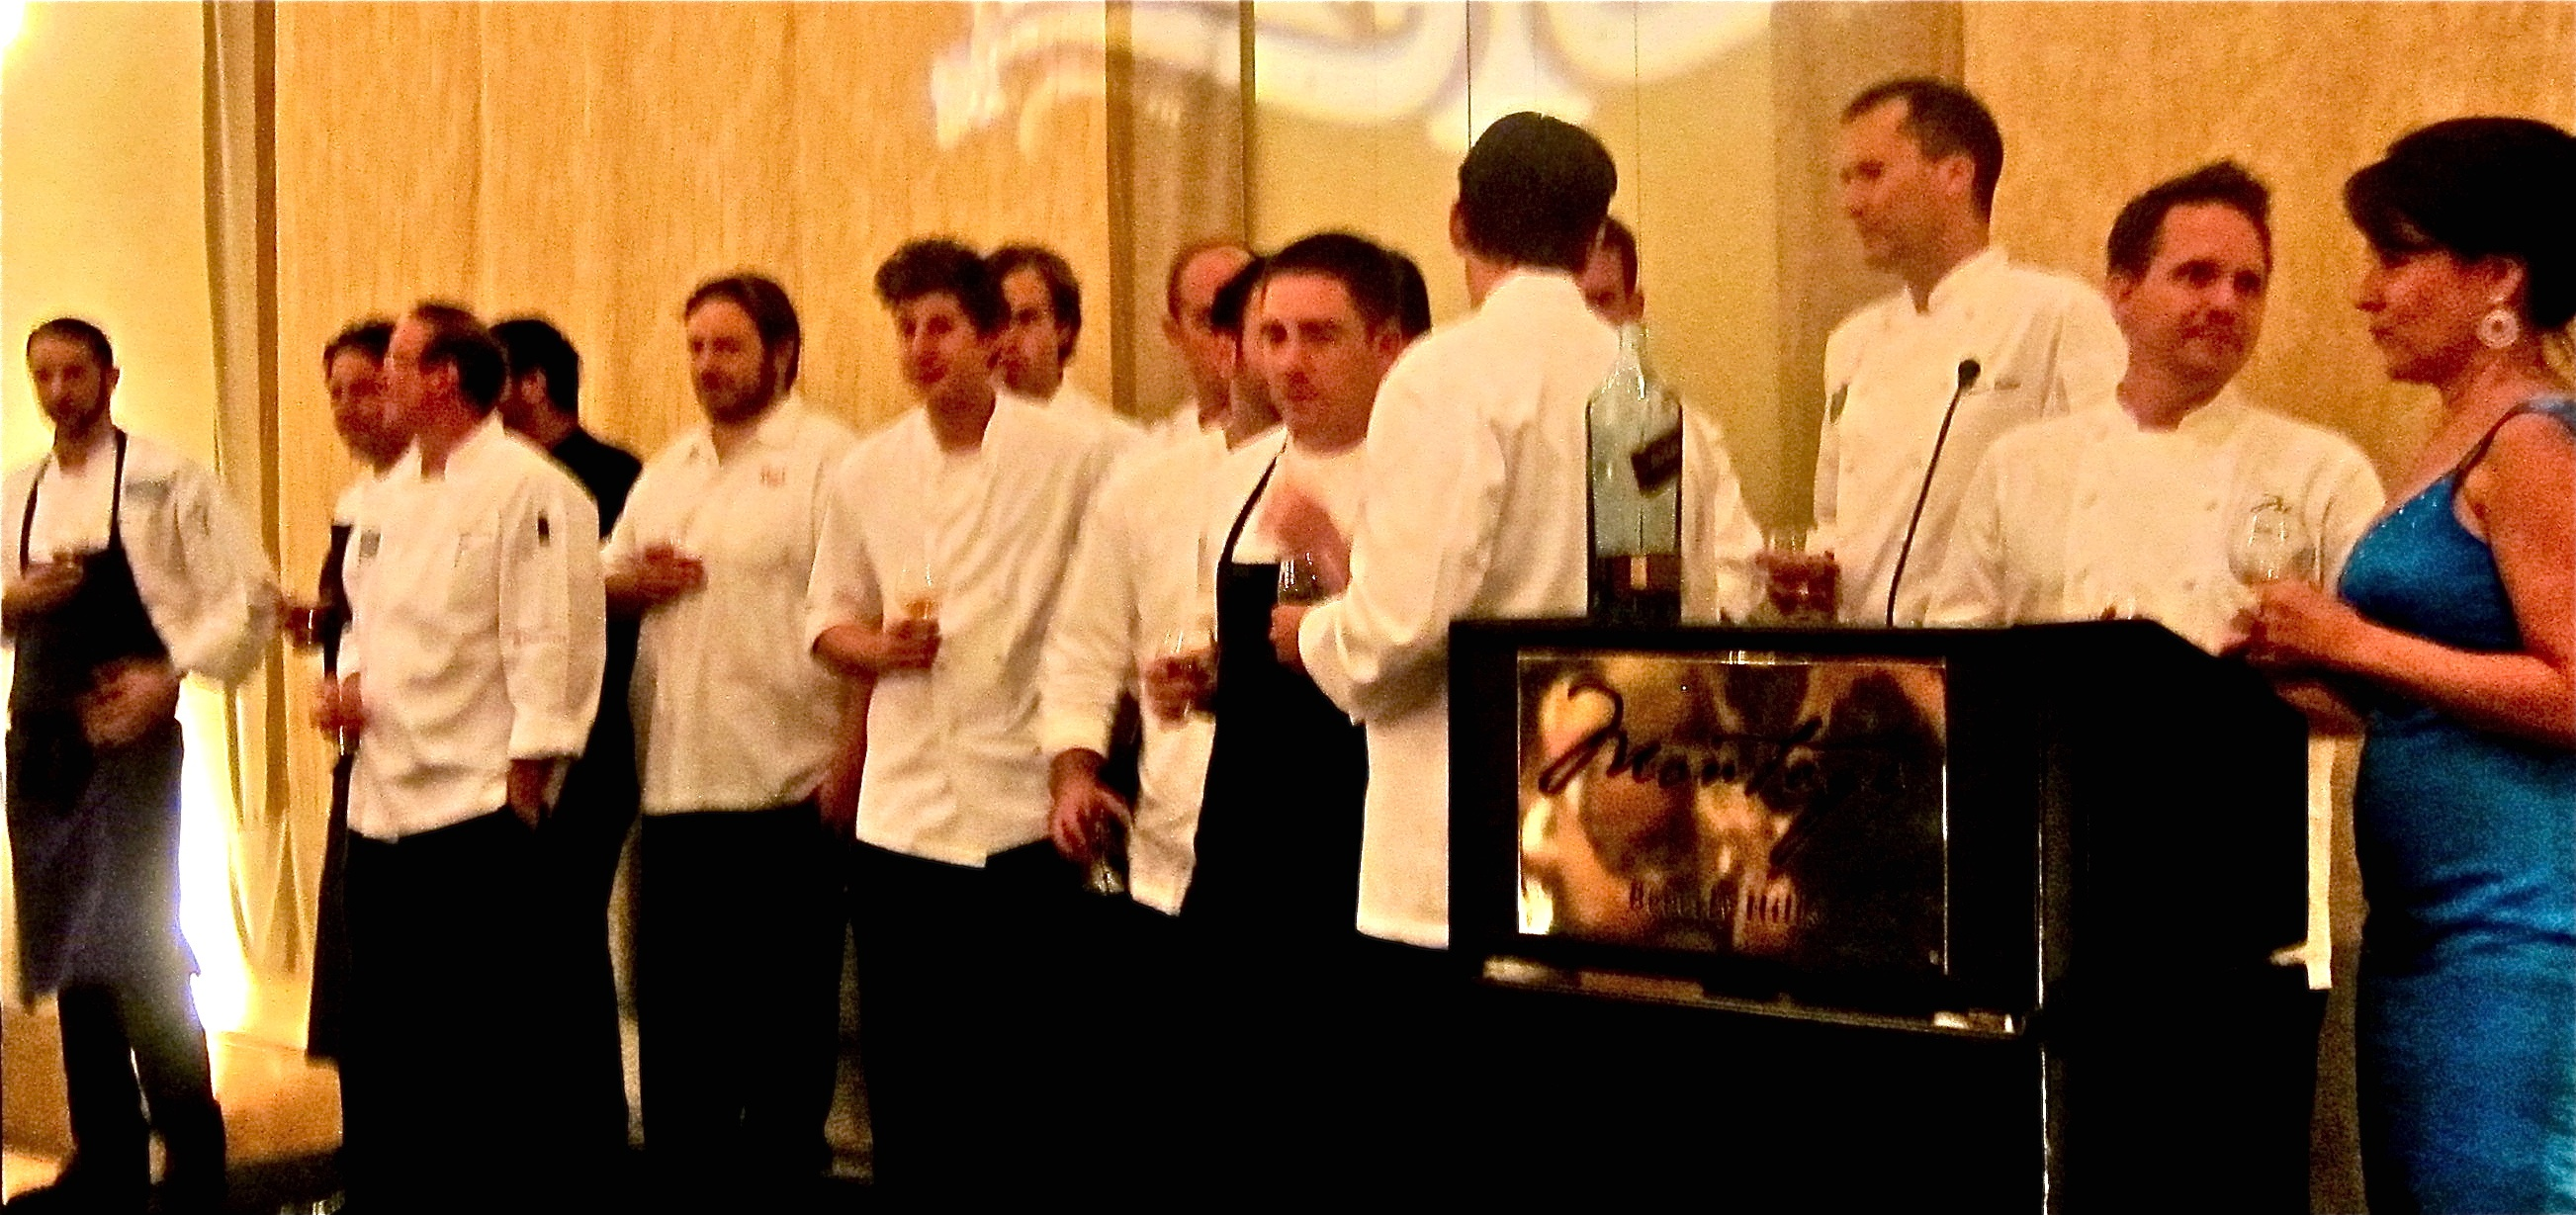 all the chefs who prepared the dinner